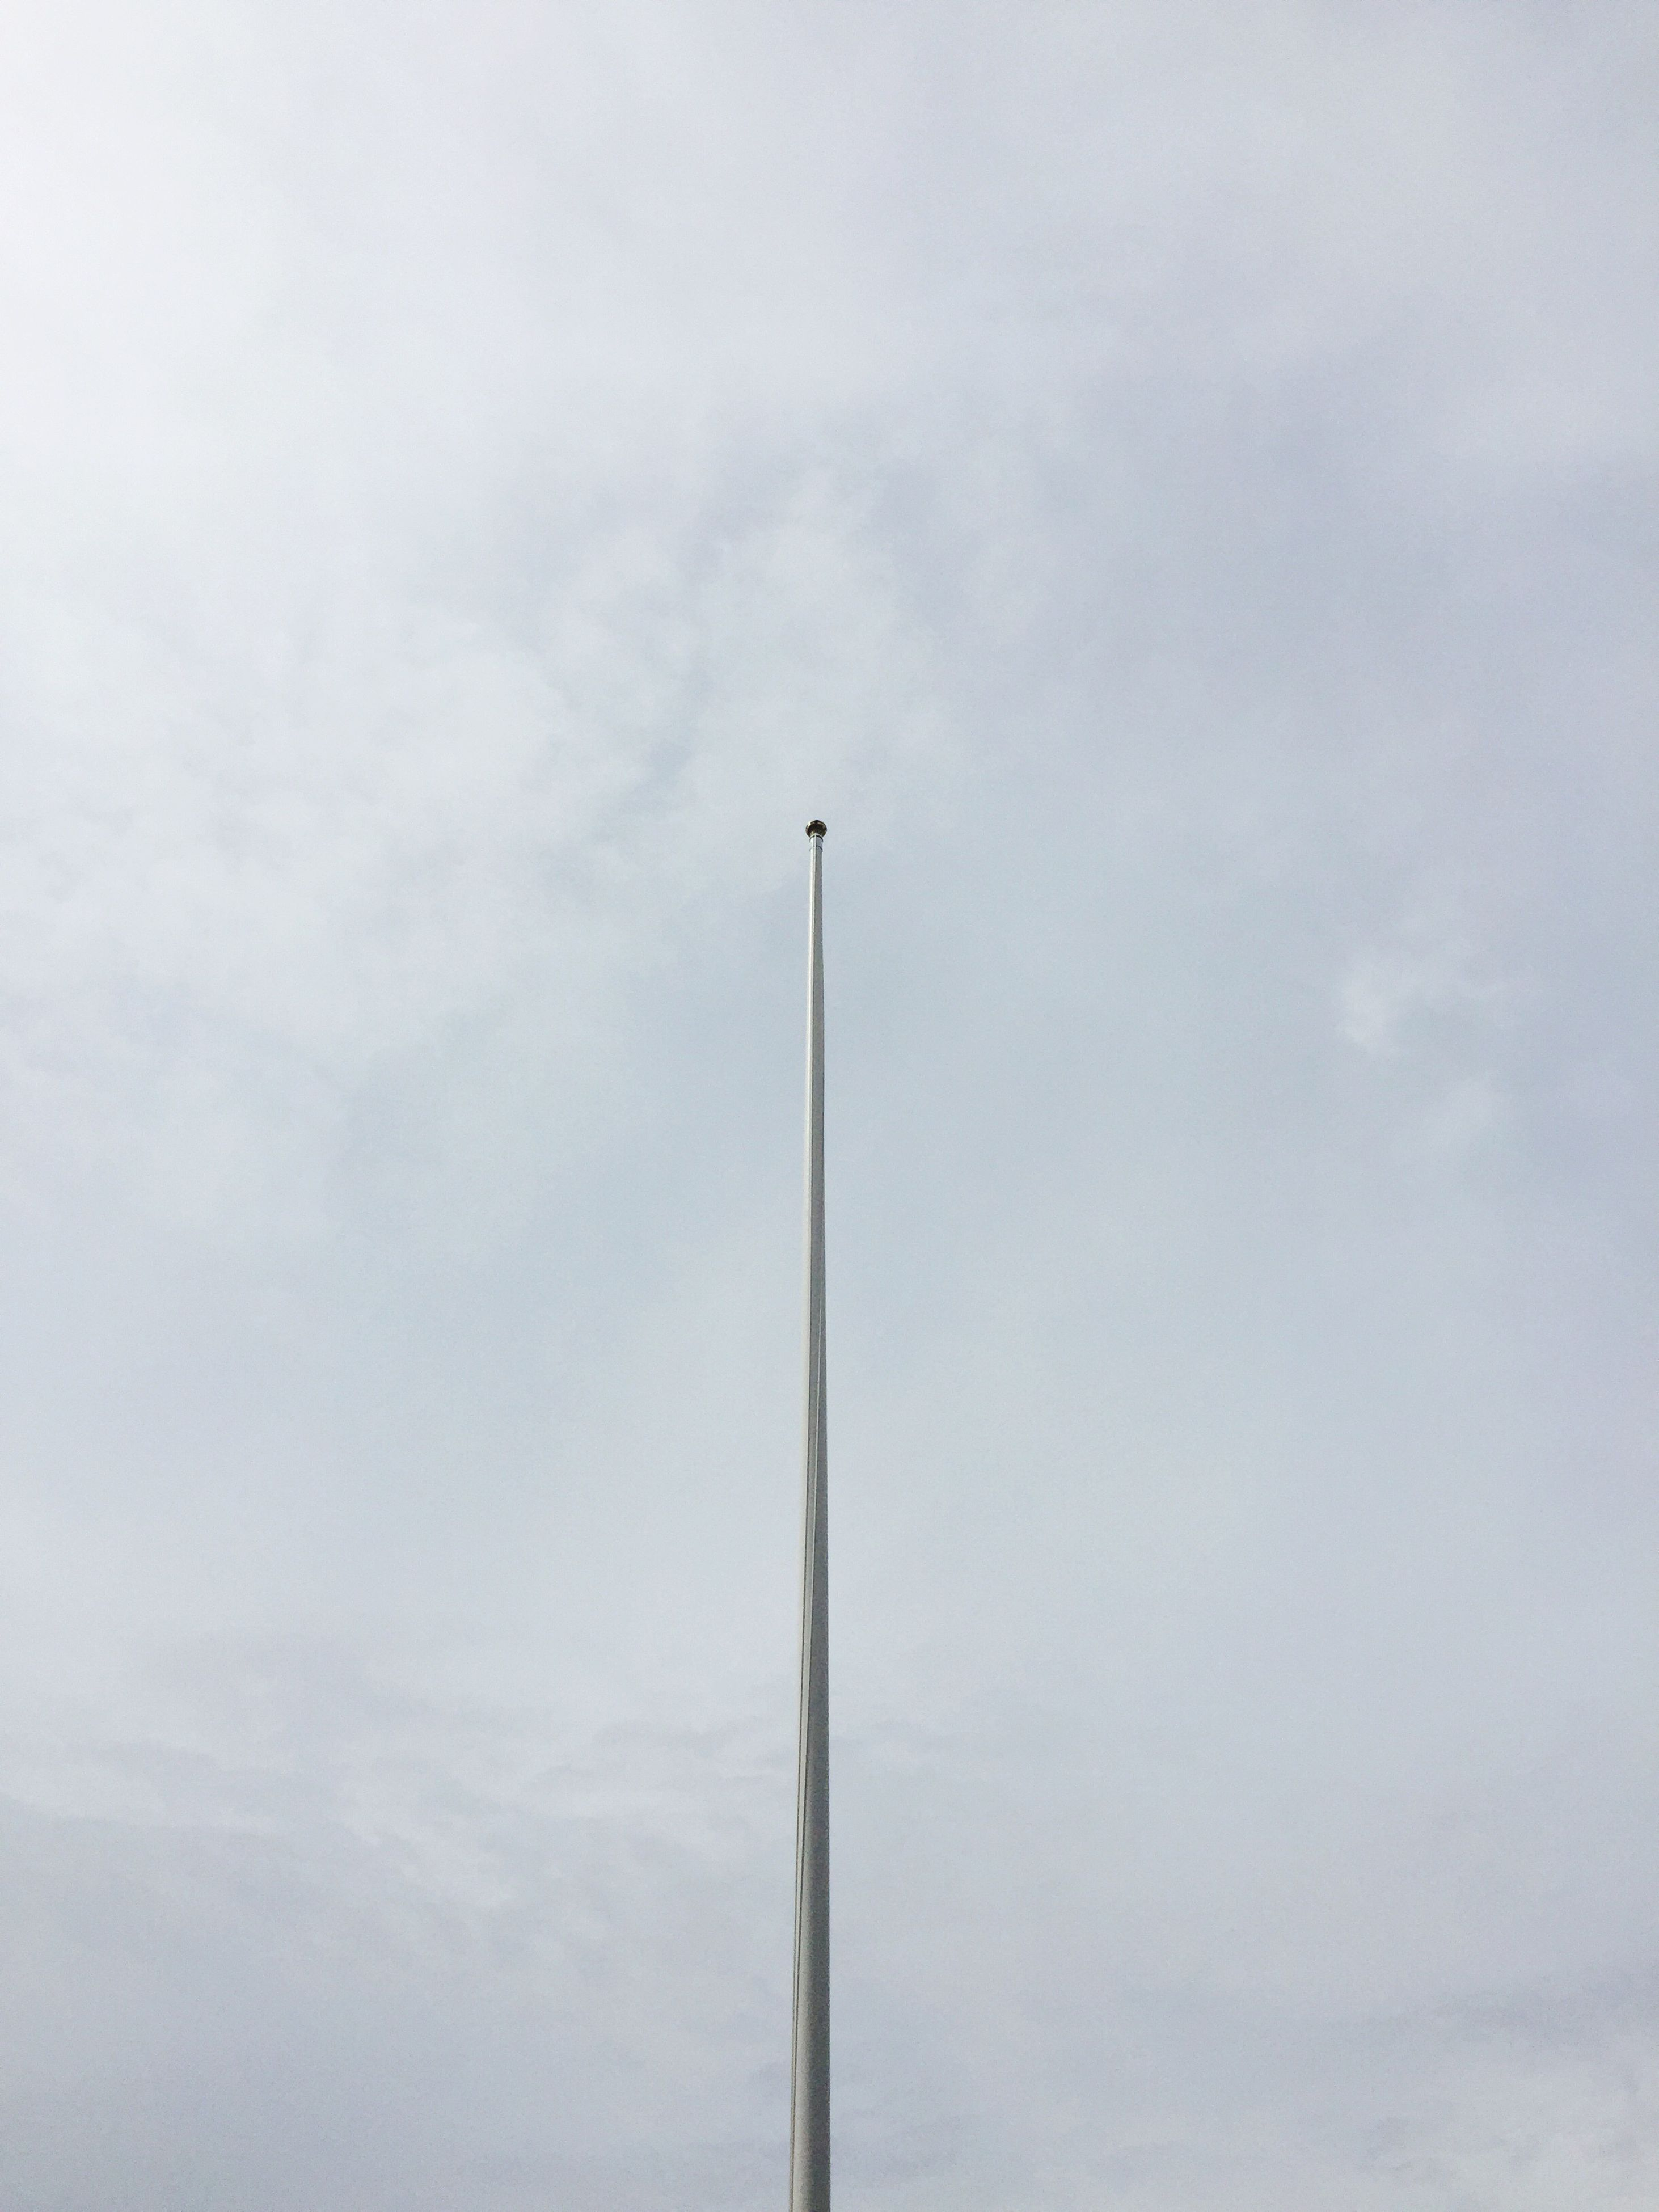 low angle view, cloud - sky, sky, no people, flag, day, outdoors, nature